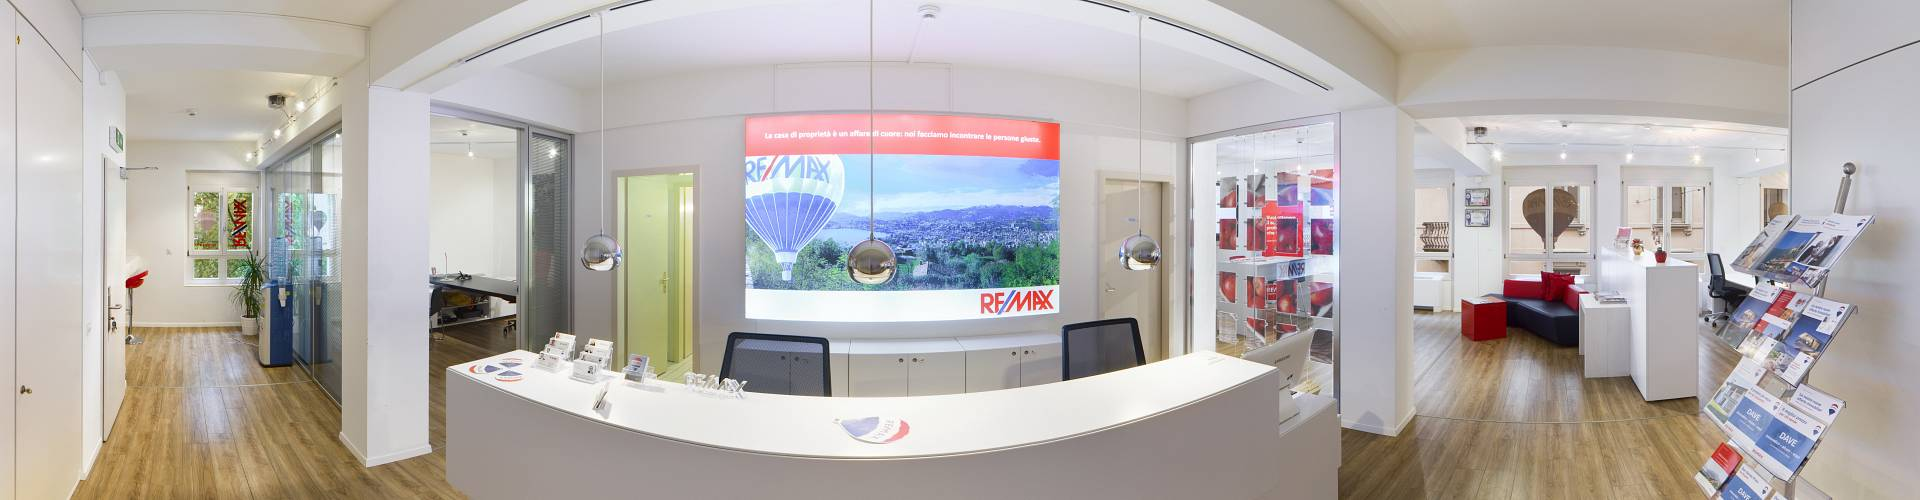 RE/MAX Immobiliare Lugano